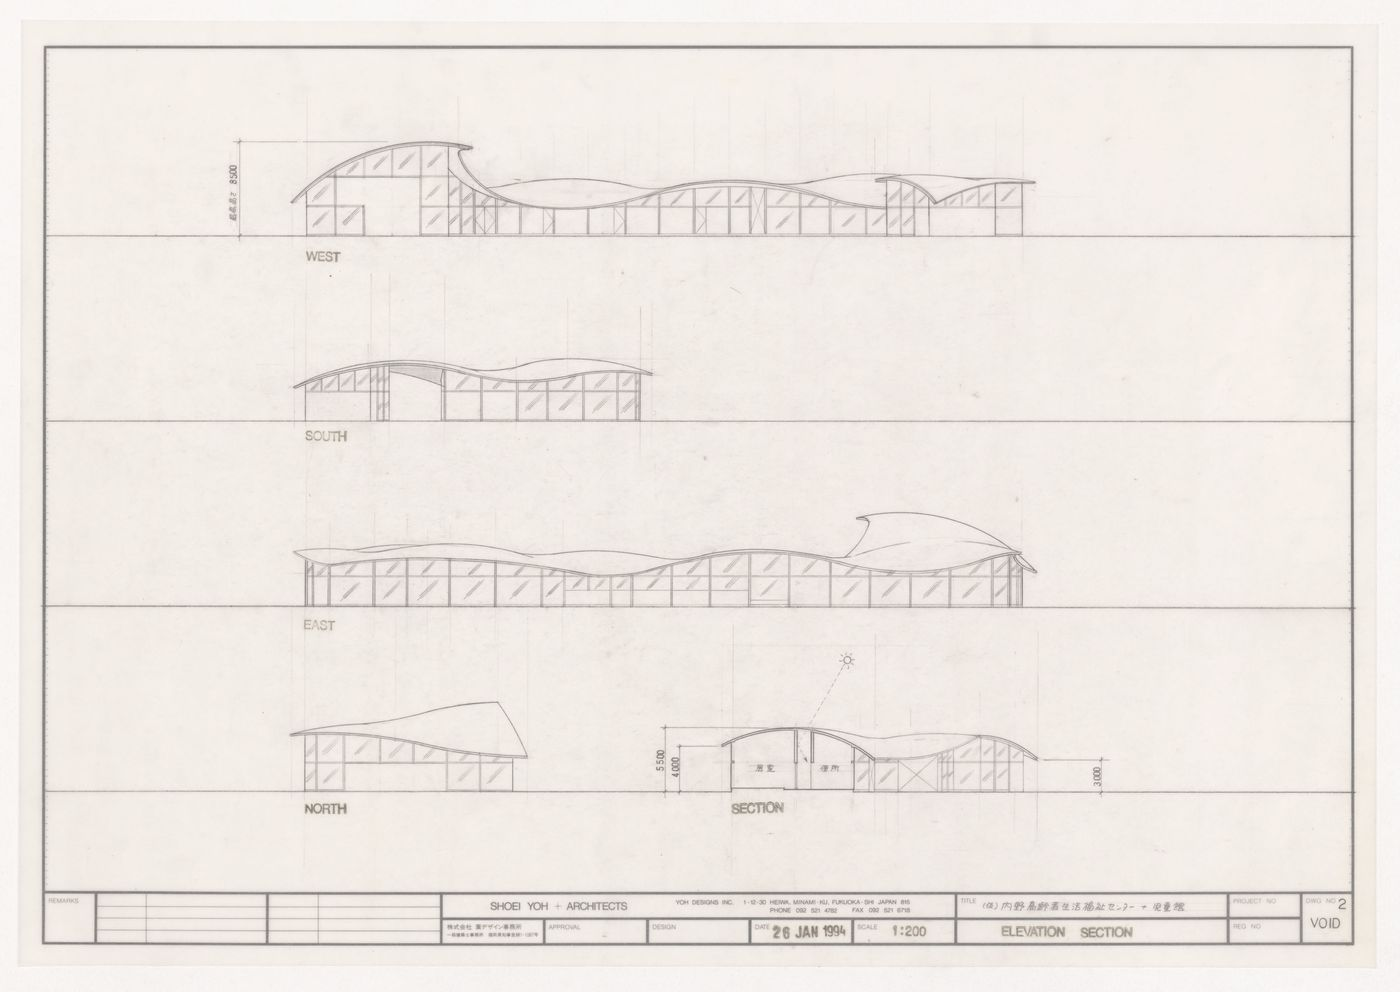 Elevations and section for Uchino Community Center for Seniors and Children, Fukuoka, Japan